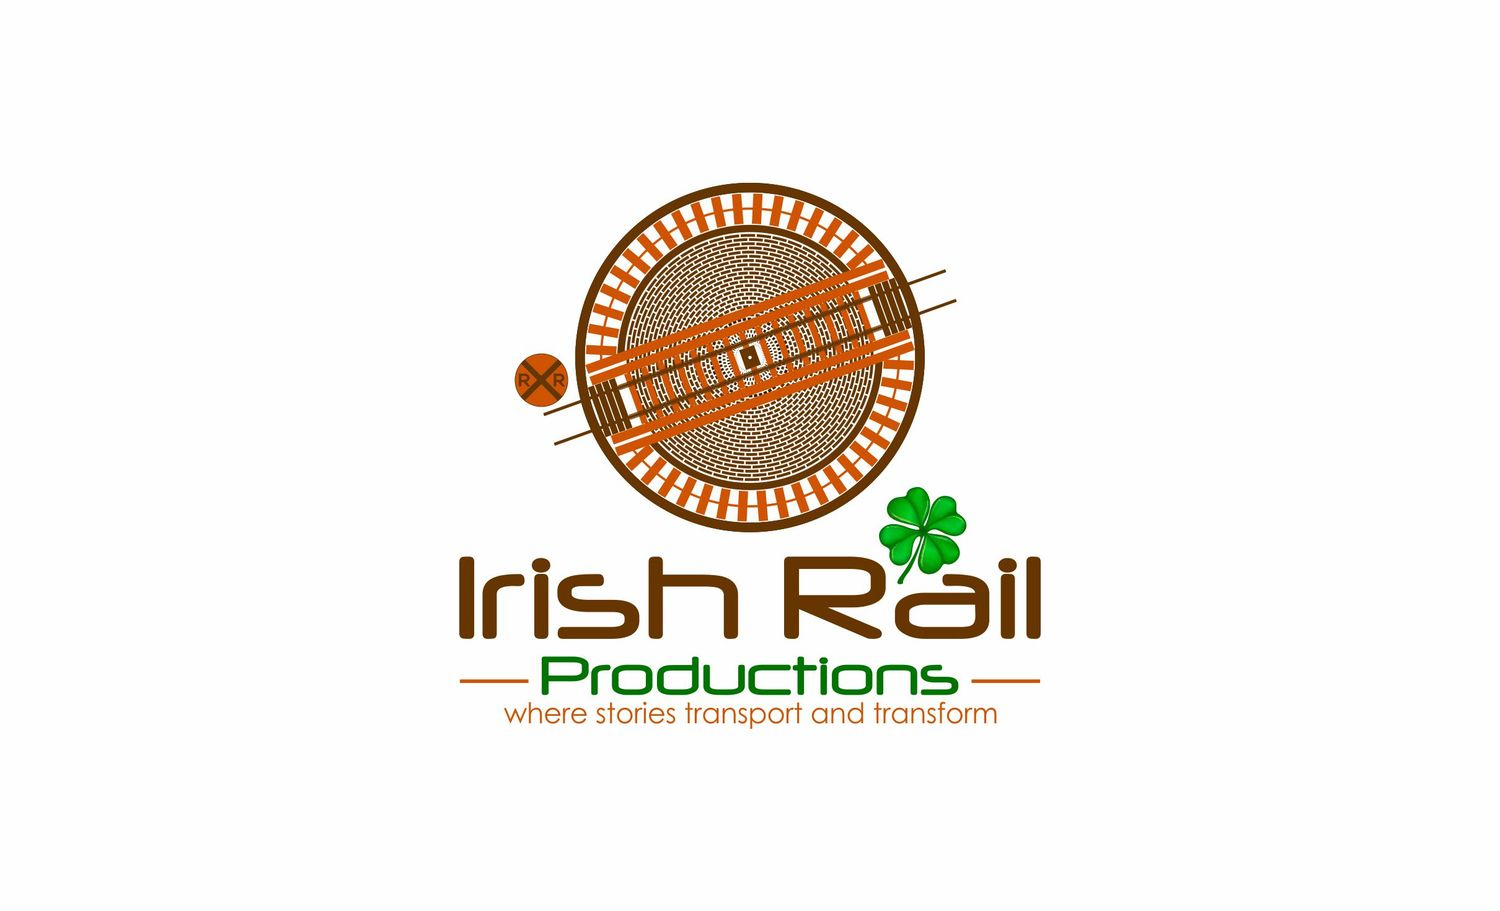 Irish Rail Productions